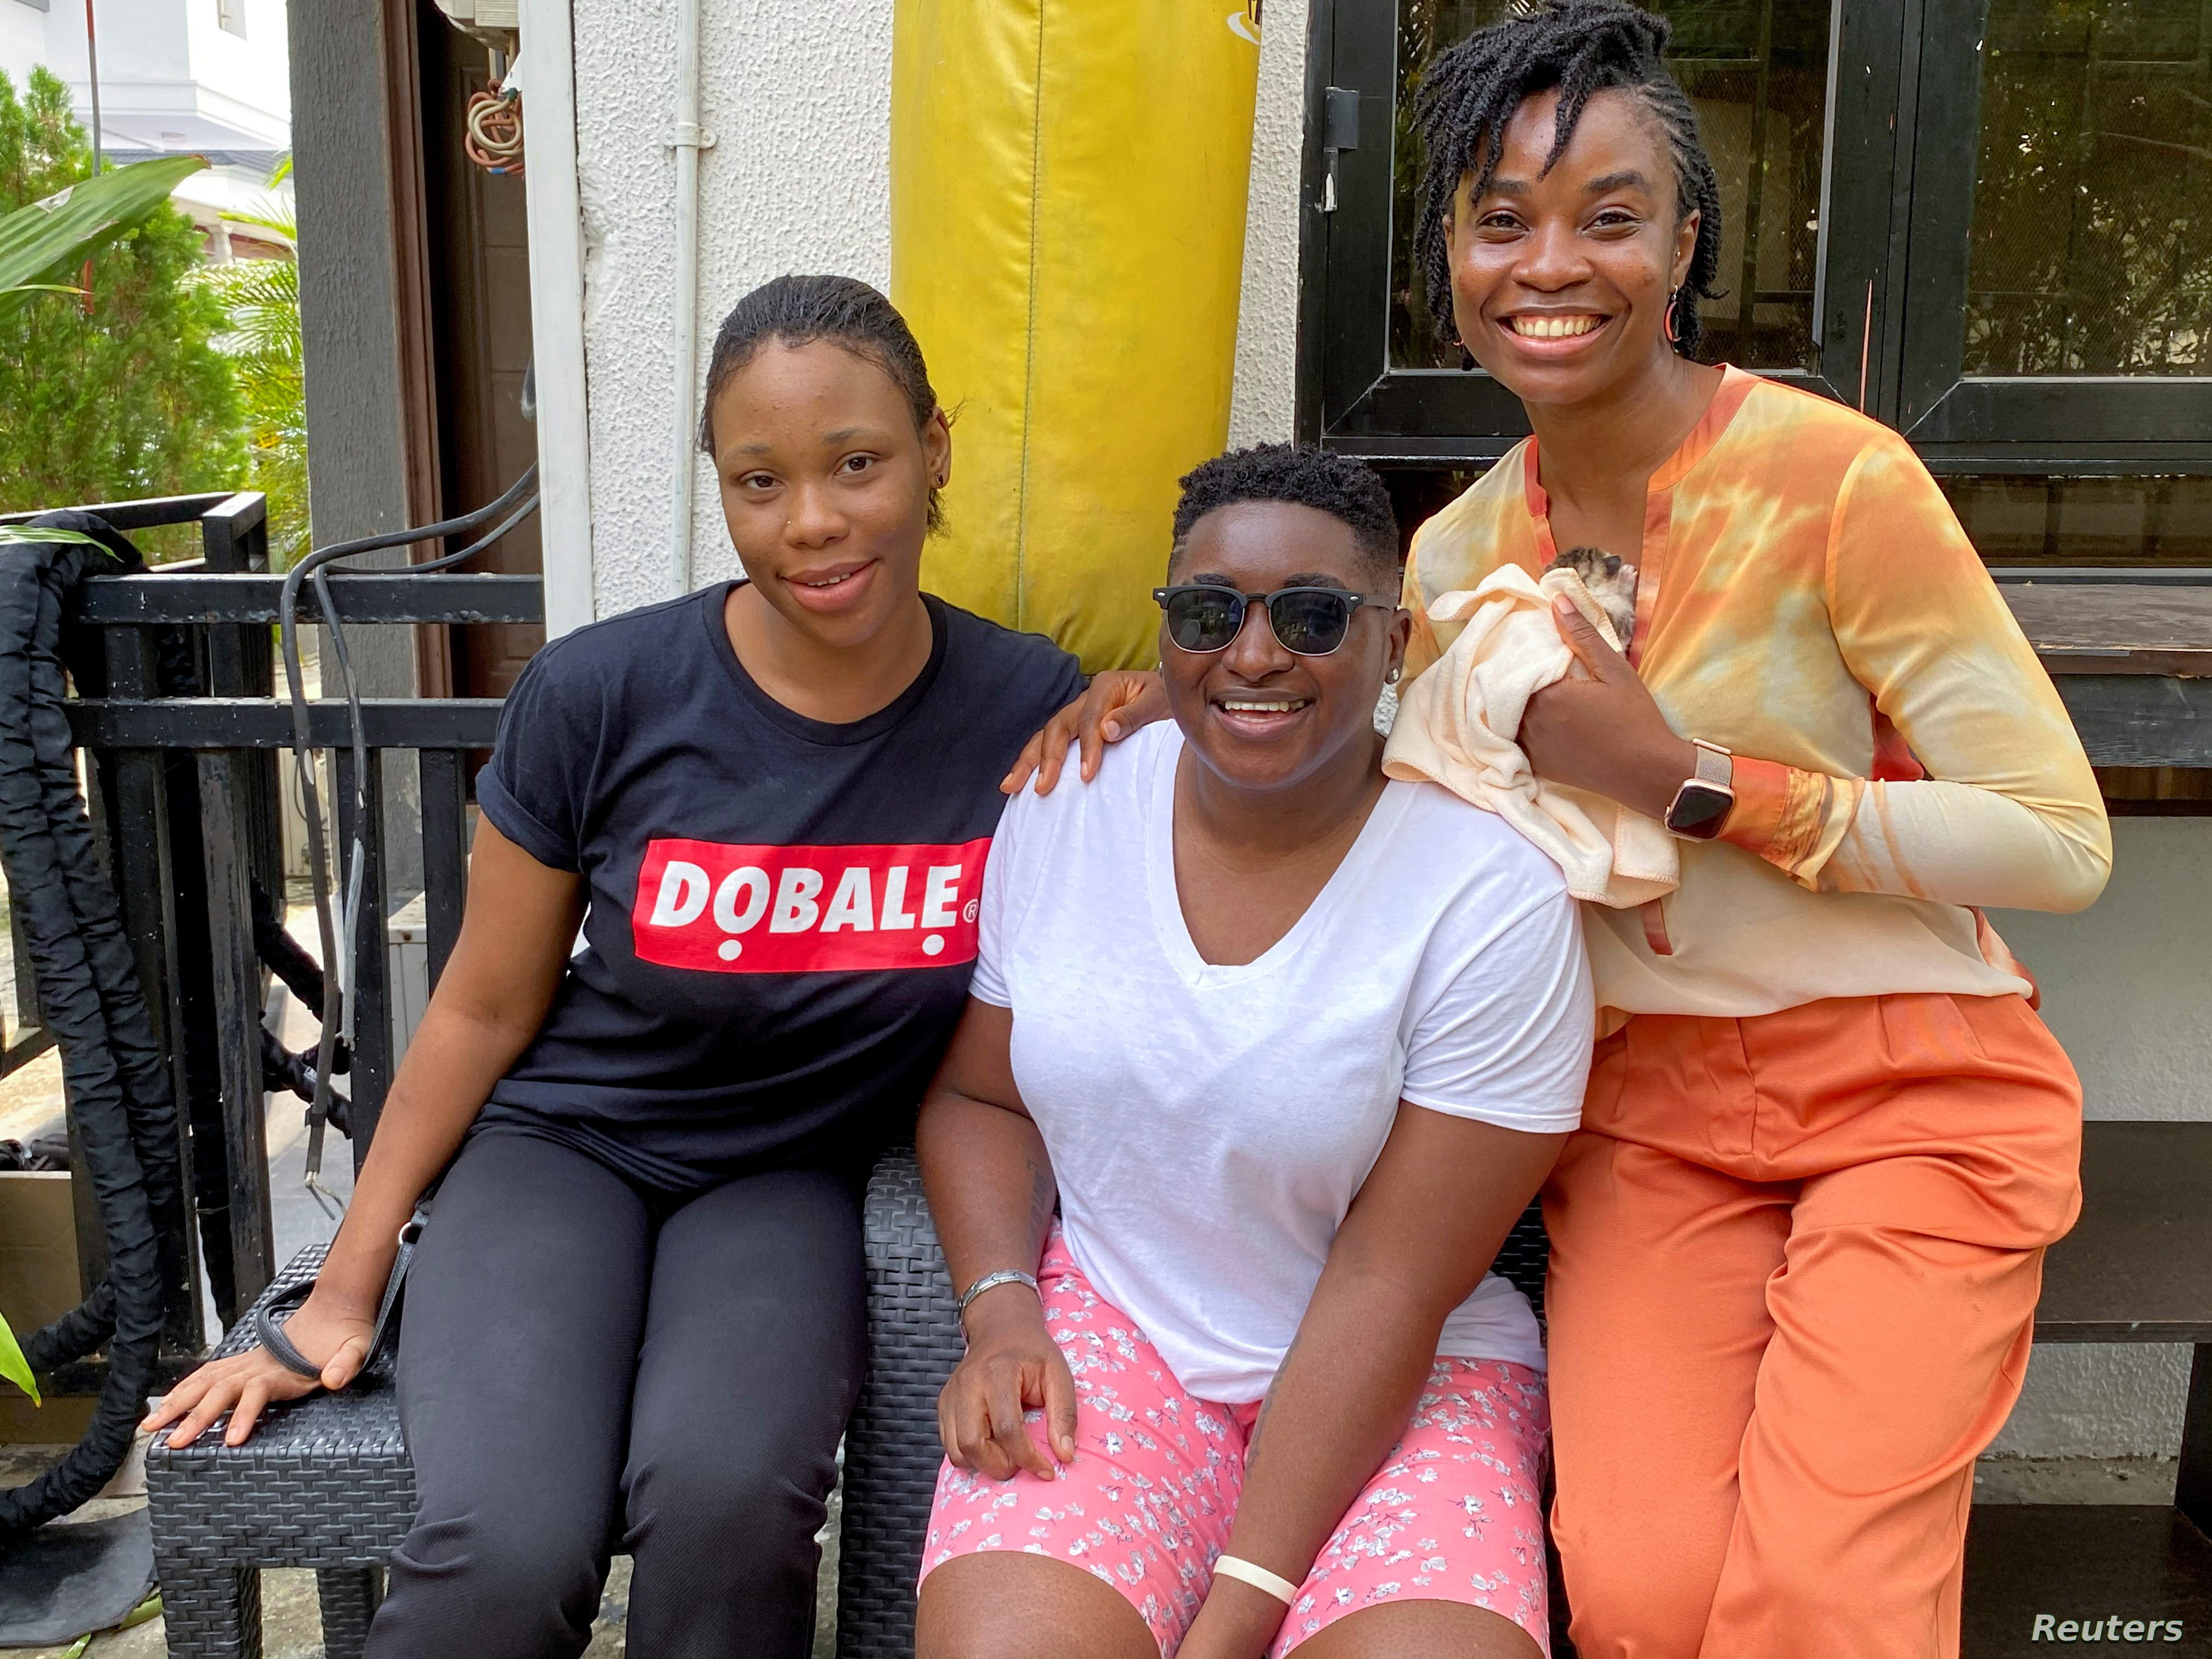 Mature lesbian org Nigeria S First Lesbian Film Courts Controversy Ahead Of Online Debut Voice Of America English